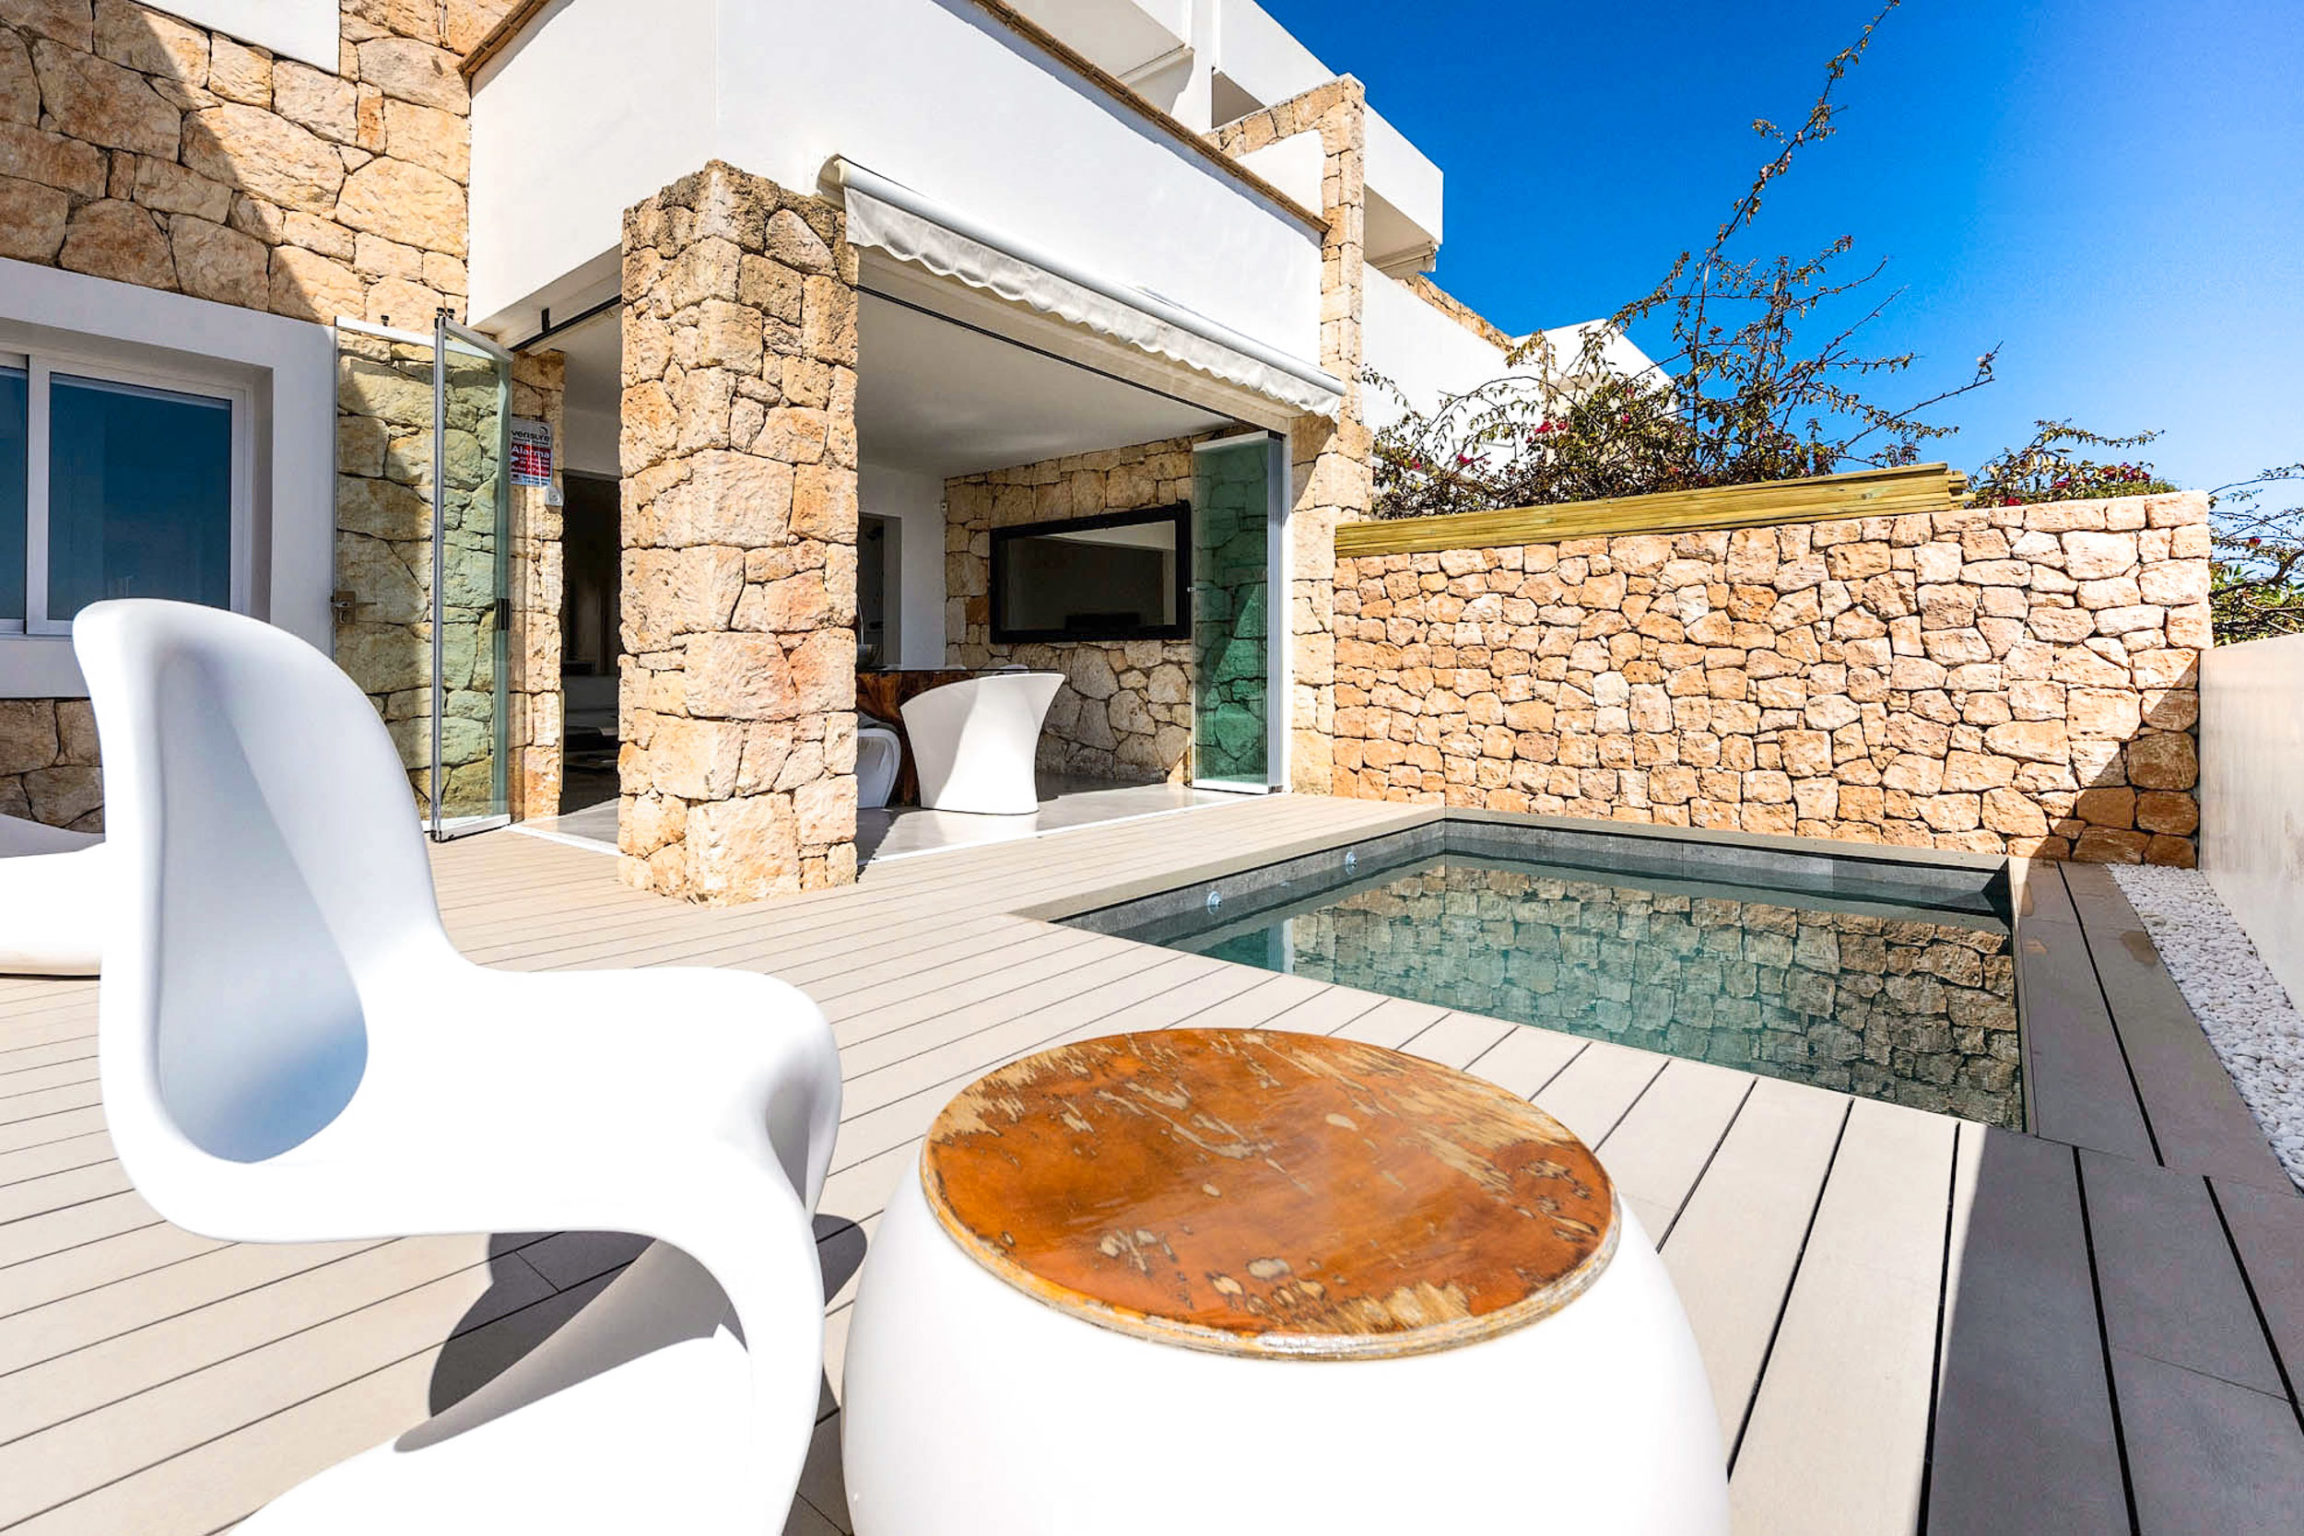 https://www.white-ibiza.com/wp-content/uploads/2020/03/white-ibiza-property-WI181-2020-06-2304x1536.jpg